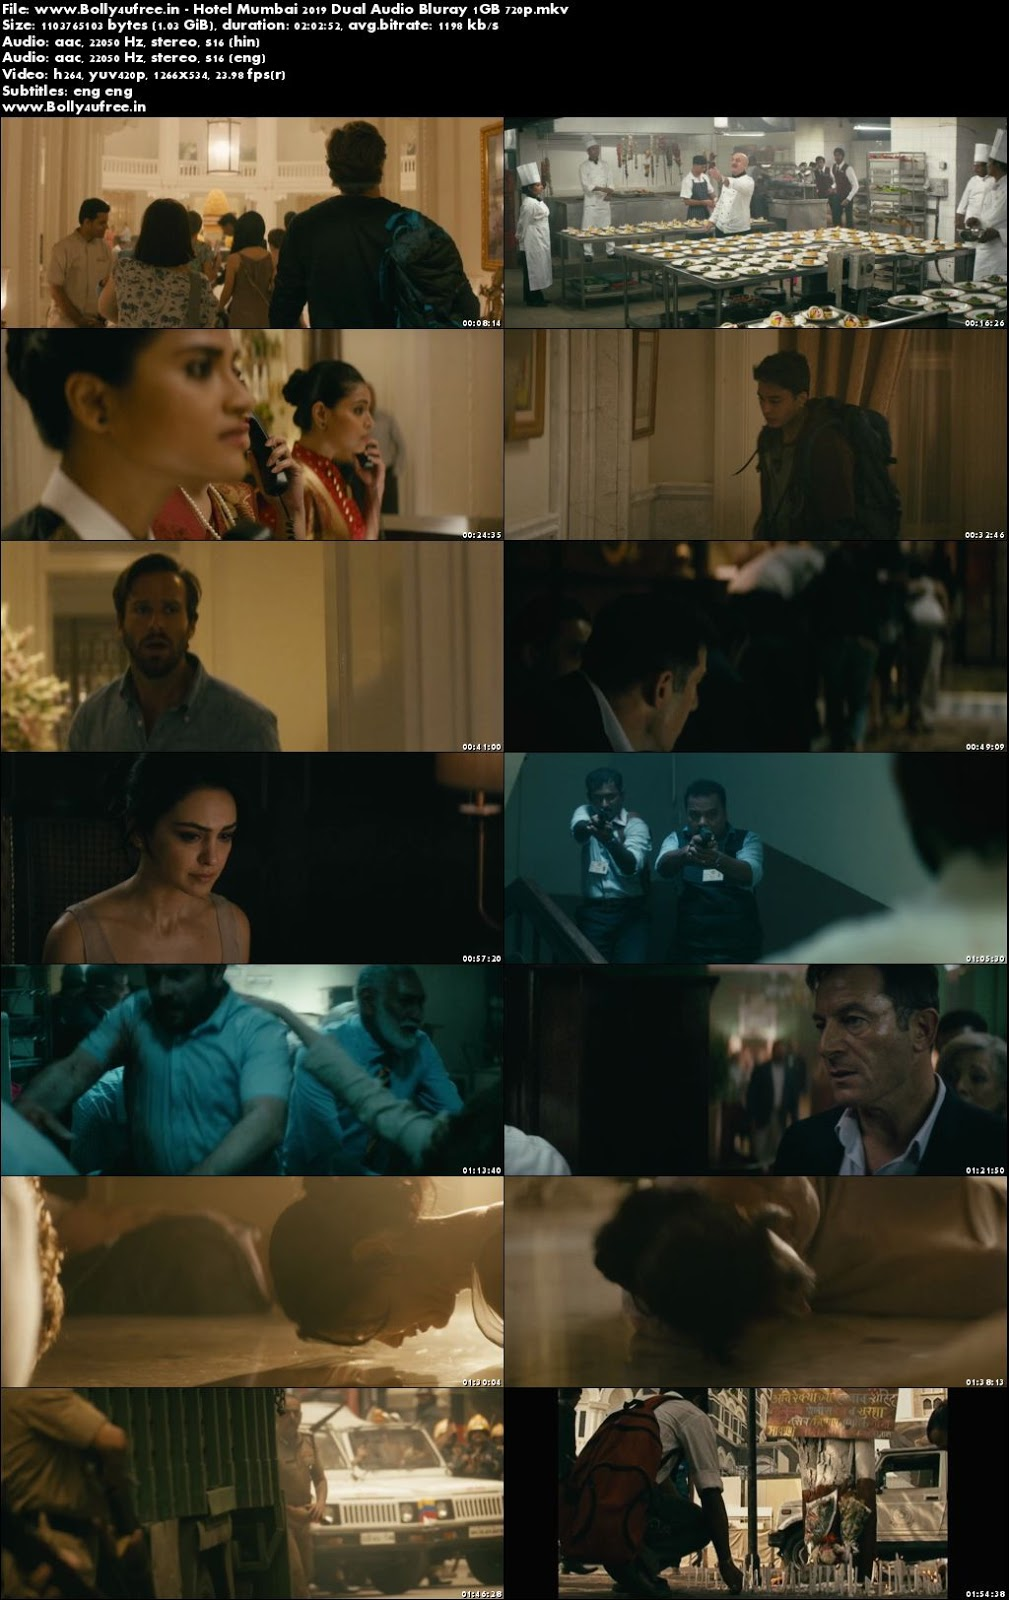 Hotel Mumbai 2019 Hindi Dual Audio Bluray 1GB 720p